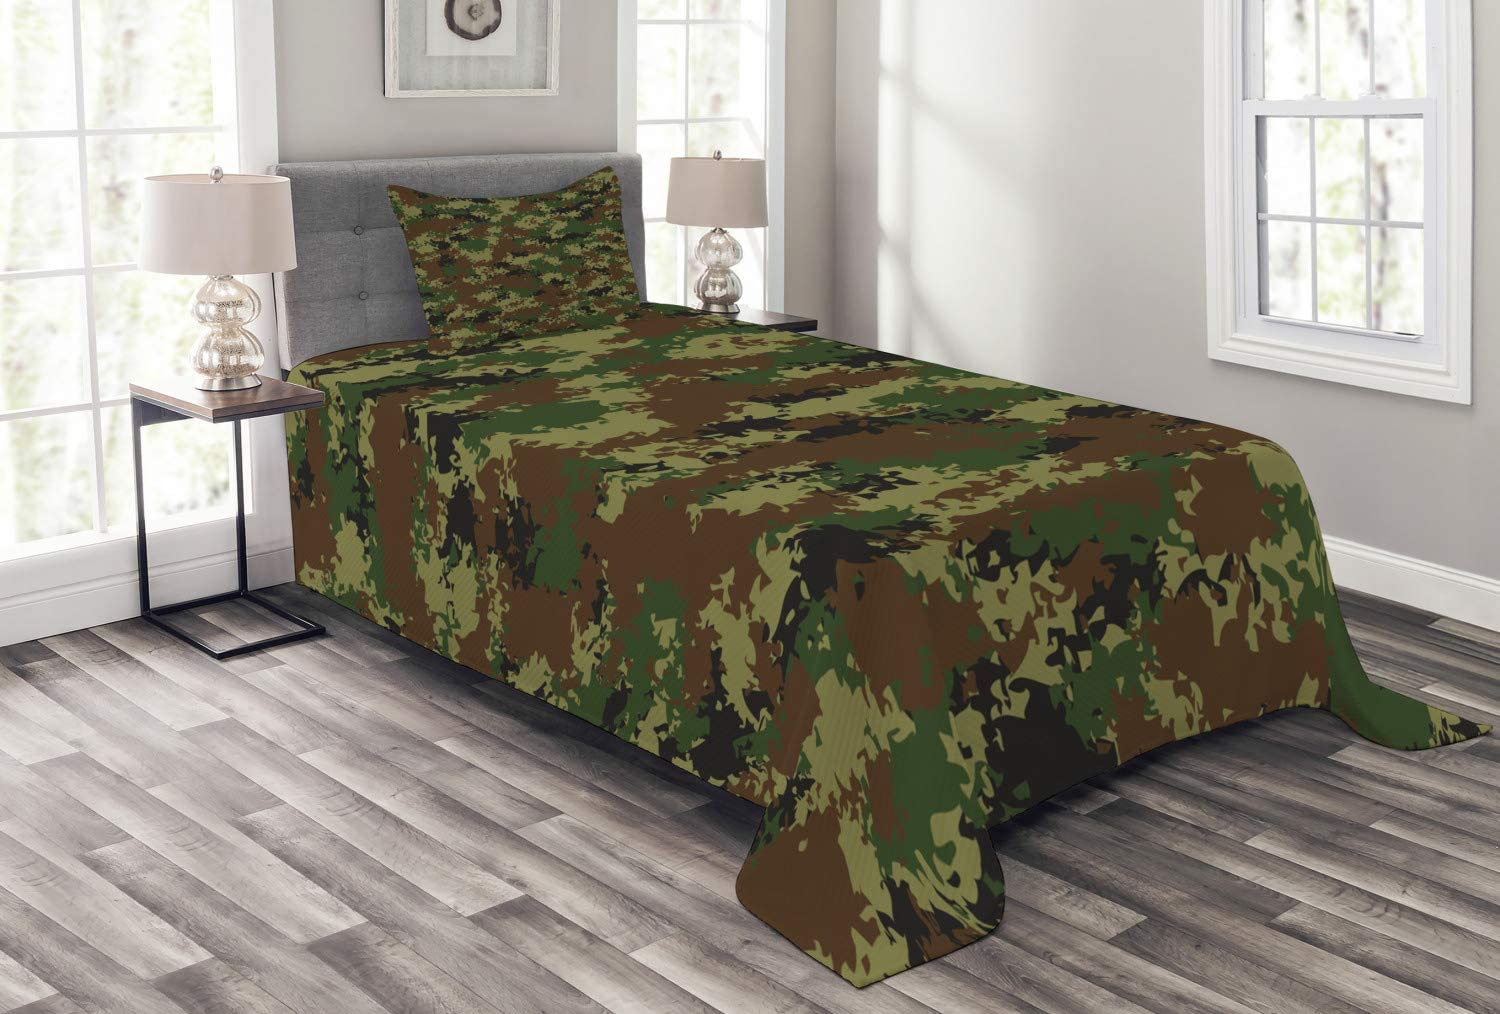 Ambesonne Camo Bedspread, Grunge Graphic Camouflage Summer Theme Armed Forces Uniform Inspired Dark, Decorative Quilted 2 Piece Coverlet Set with Pillow Sham, Twin Size, Pale Green